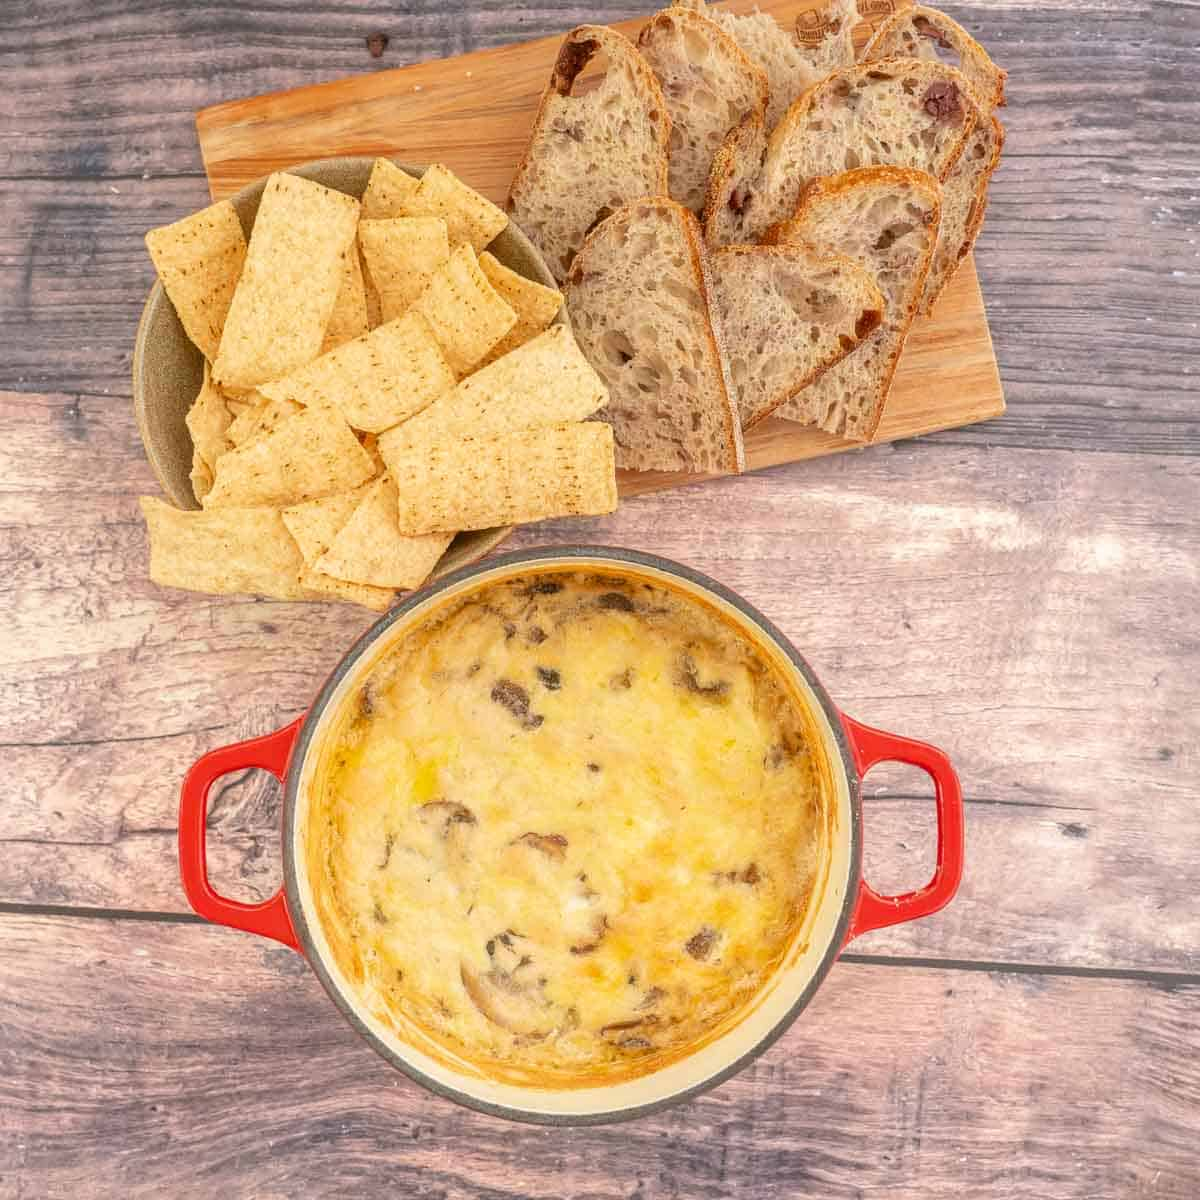 A baked cheese dip with a wooden board of chips and crusty bread.